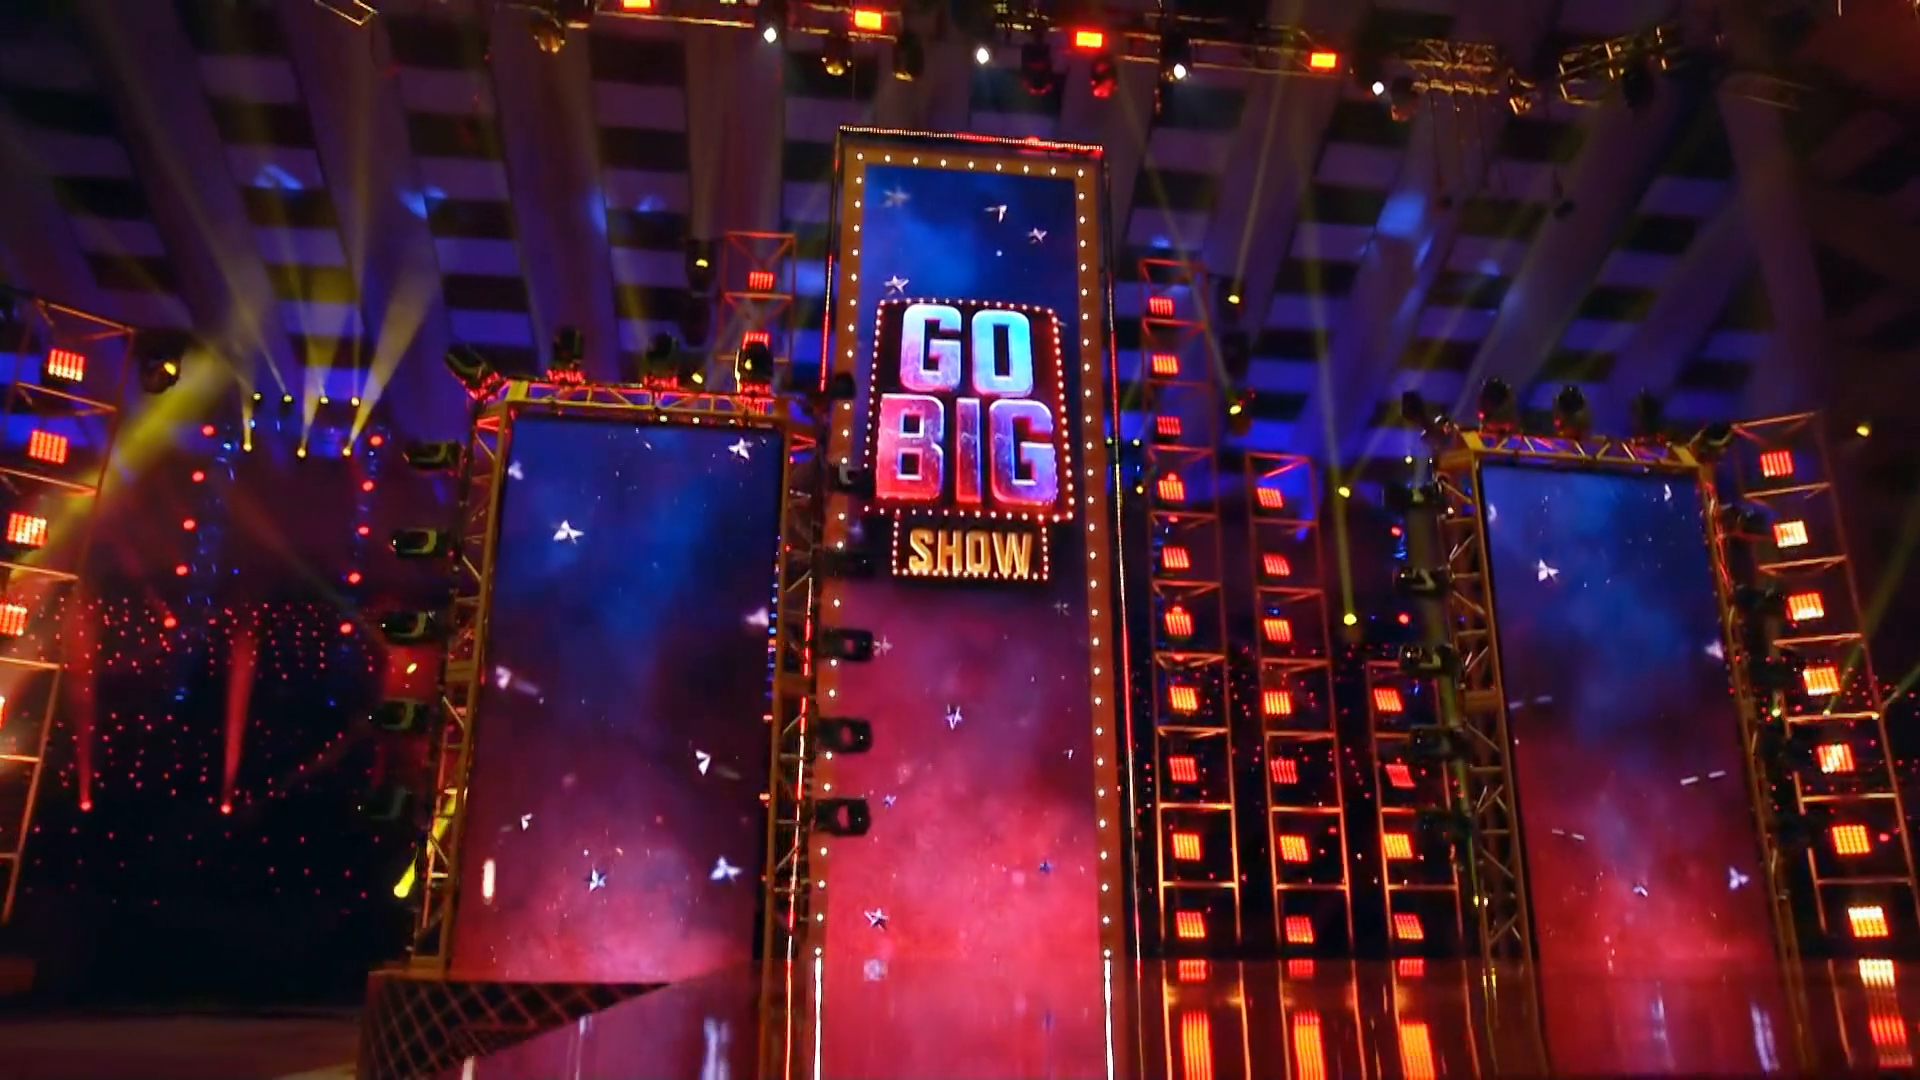 Go-Big Show: First Look